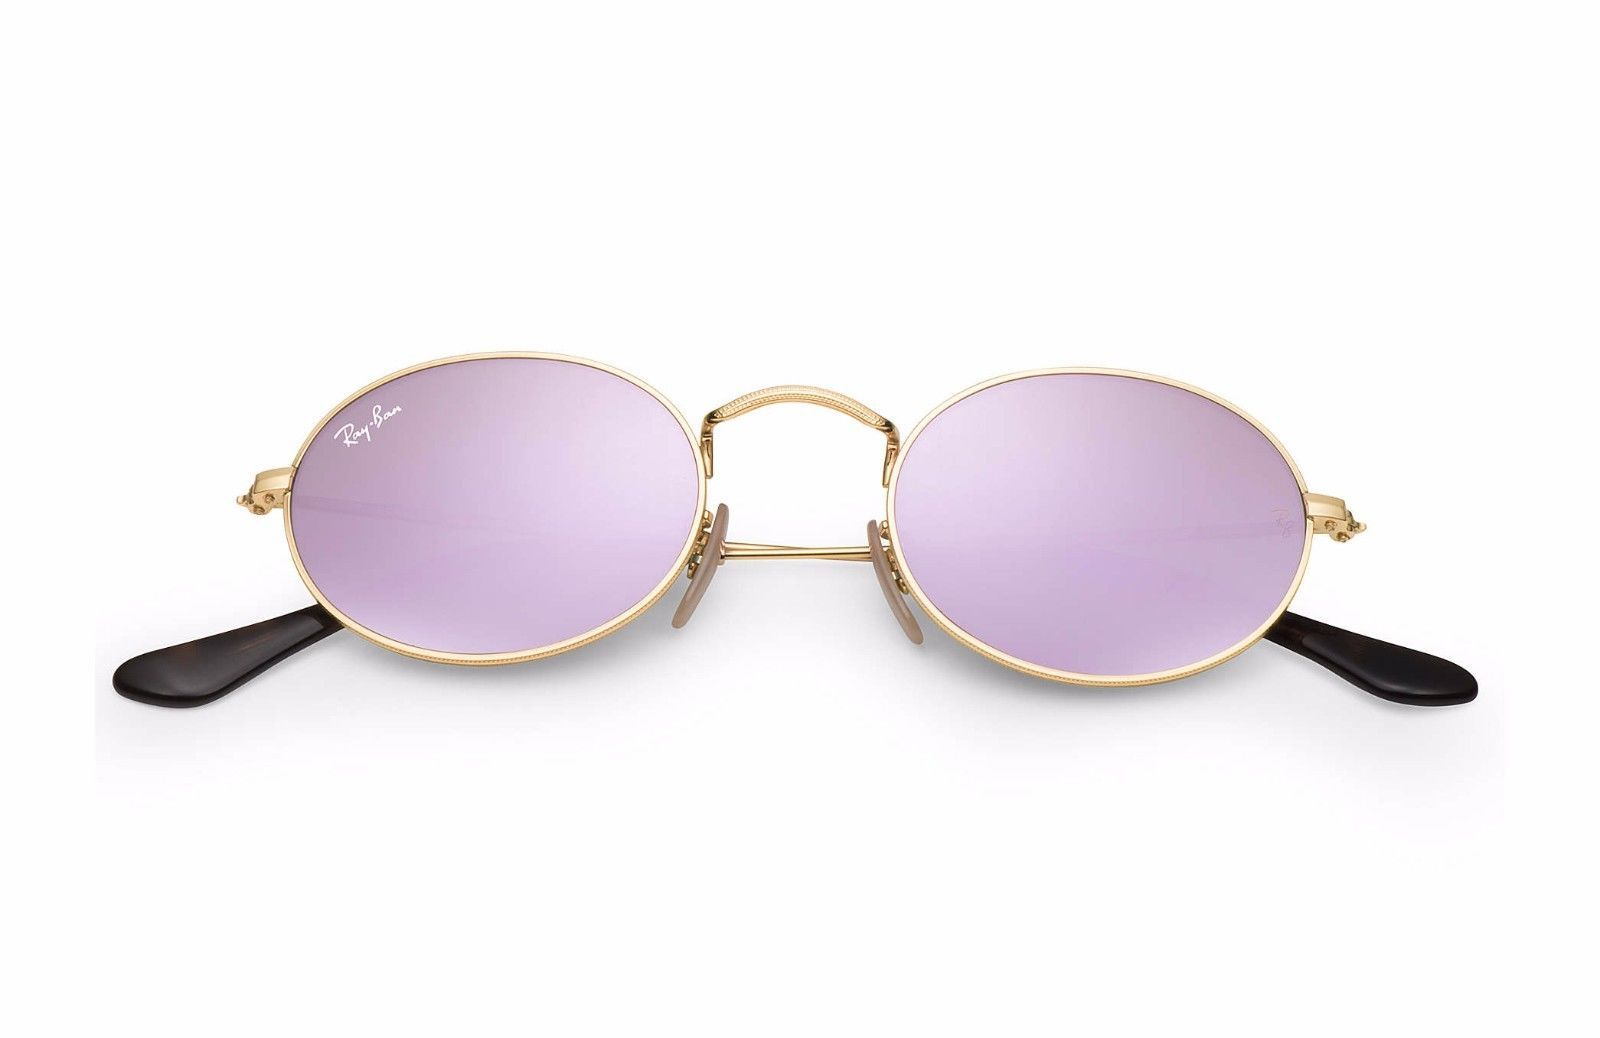 6c47326a61 Authentic Ray Ban RB3547-N 001 8O Oval Gold Lilac Mirrored Lens Sunglasses  51mm